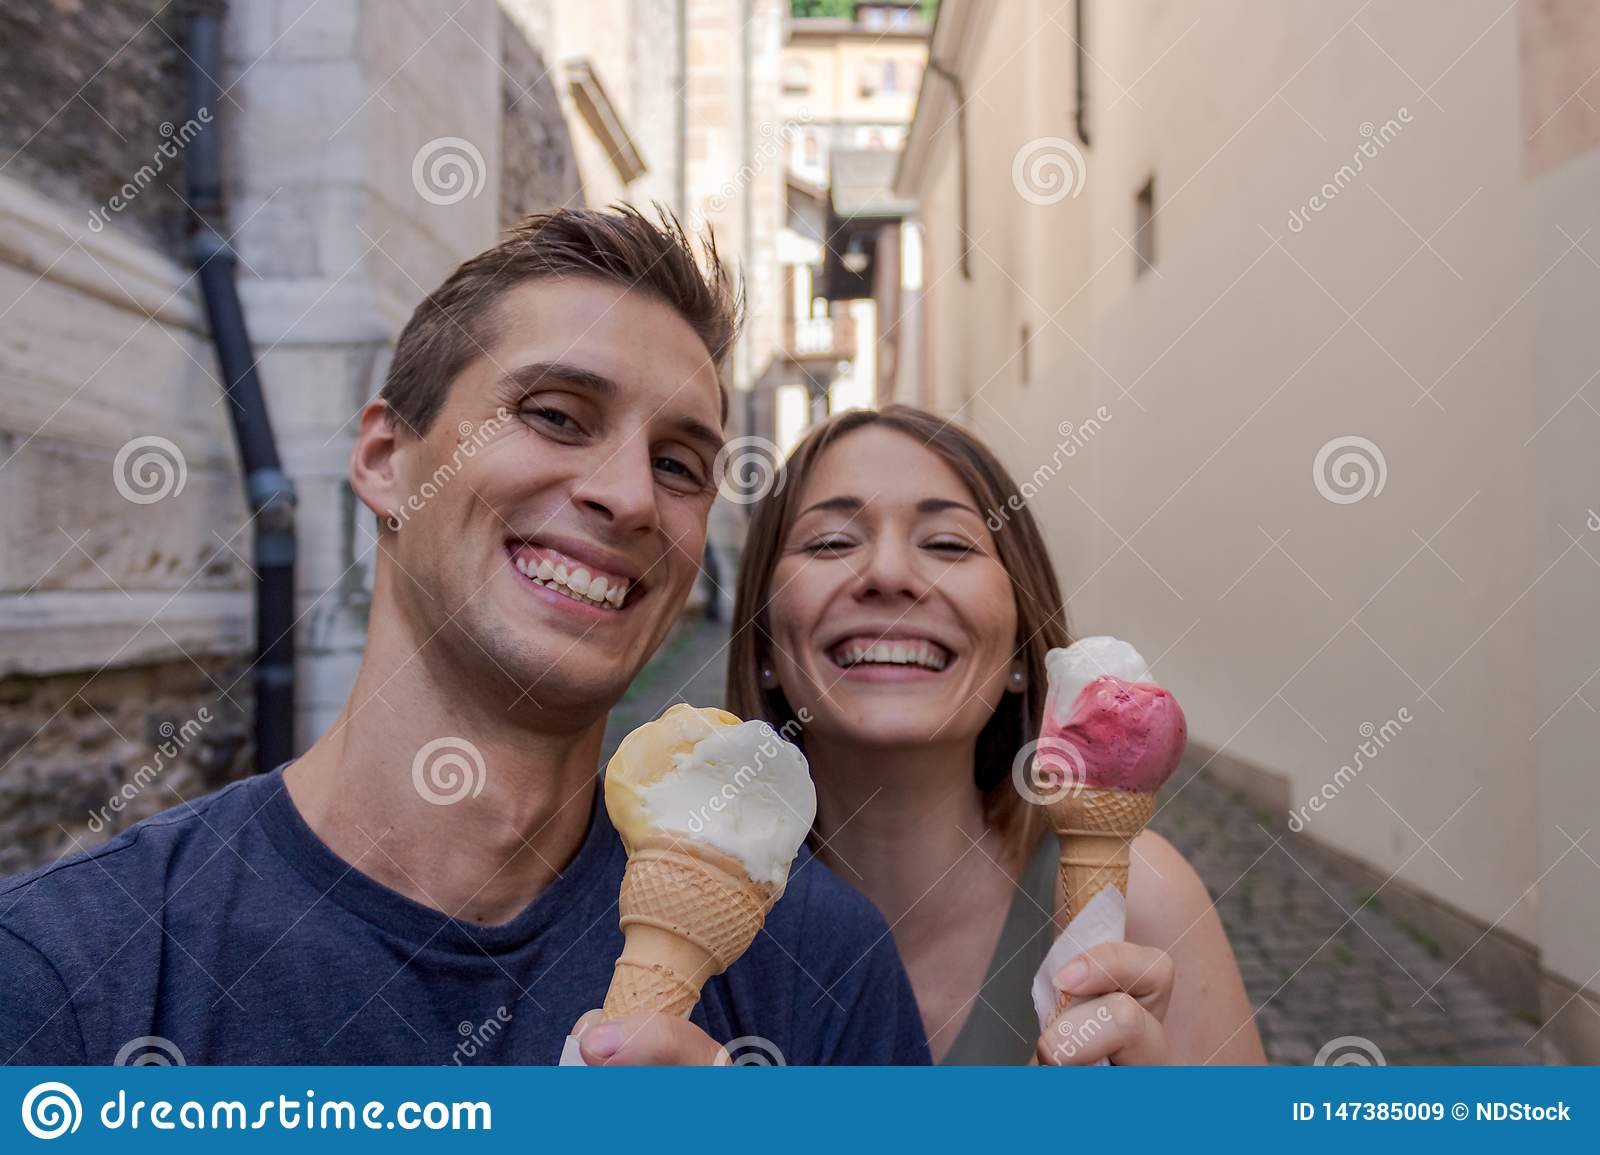 Young couple eating ice cream in an alley